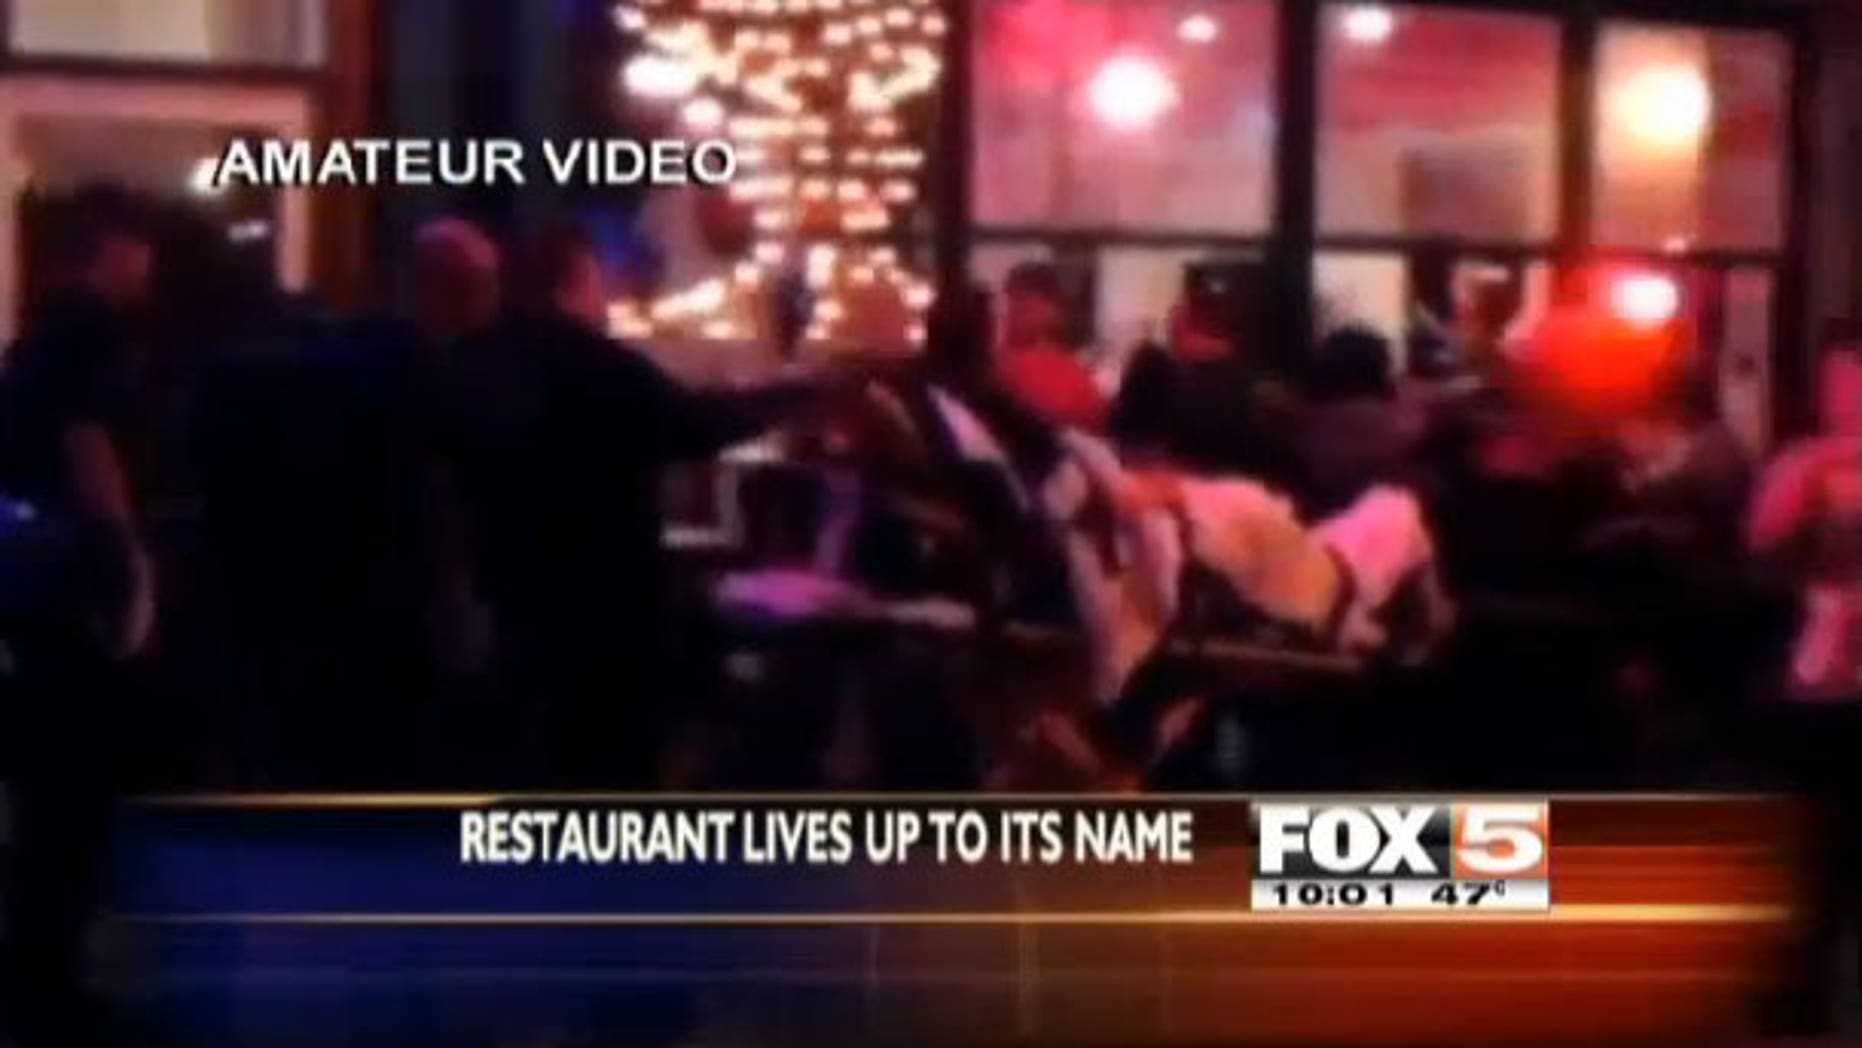 Amateur video of man being rolled out on a stretcher by EMTs after suffering a heart attack at the Heart Attack Grill in Las Vegas.